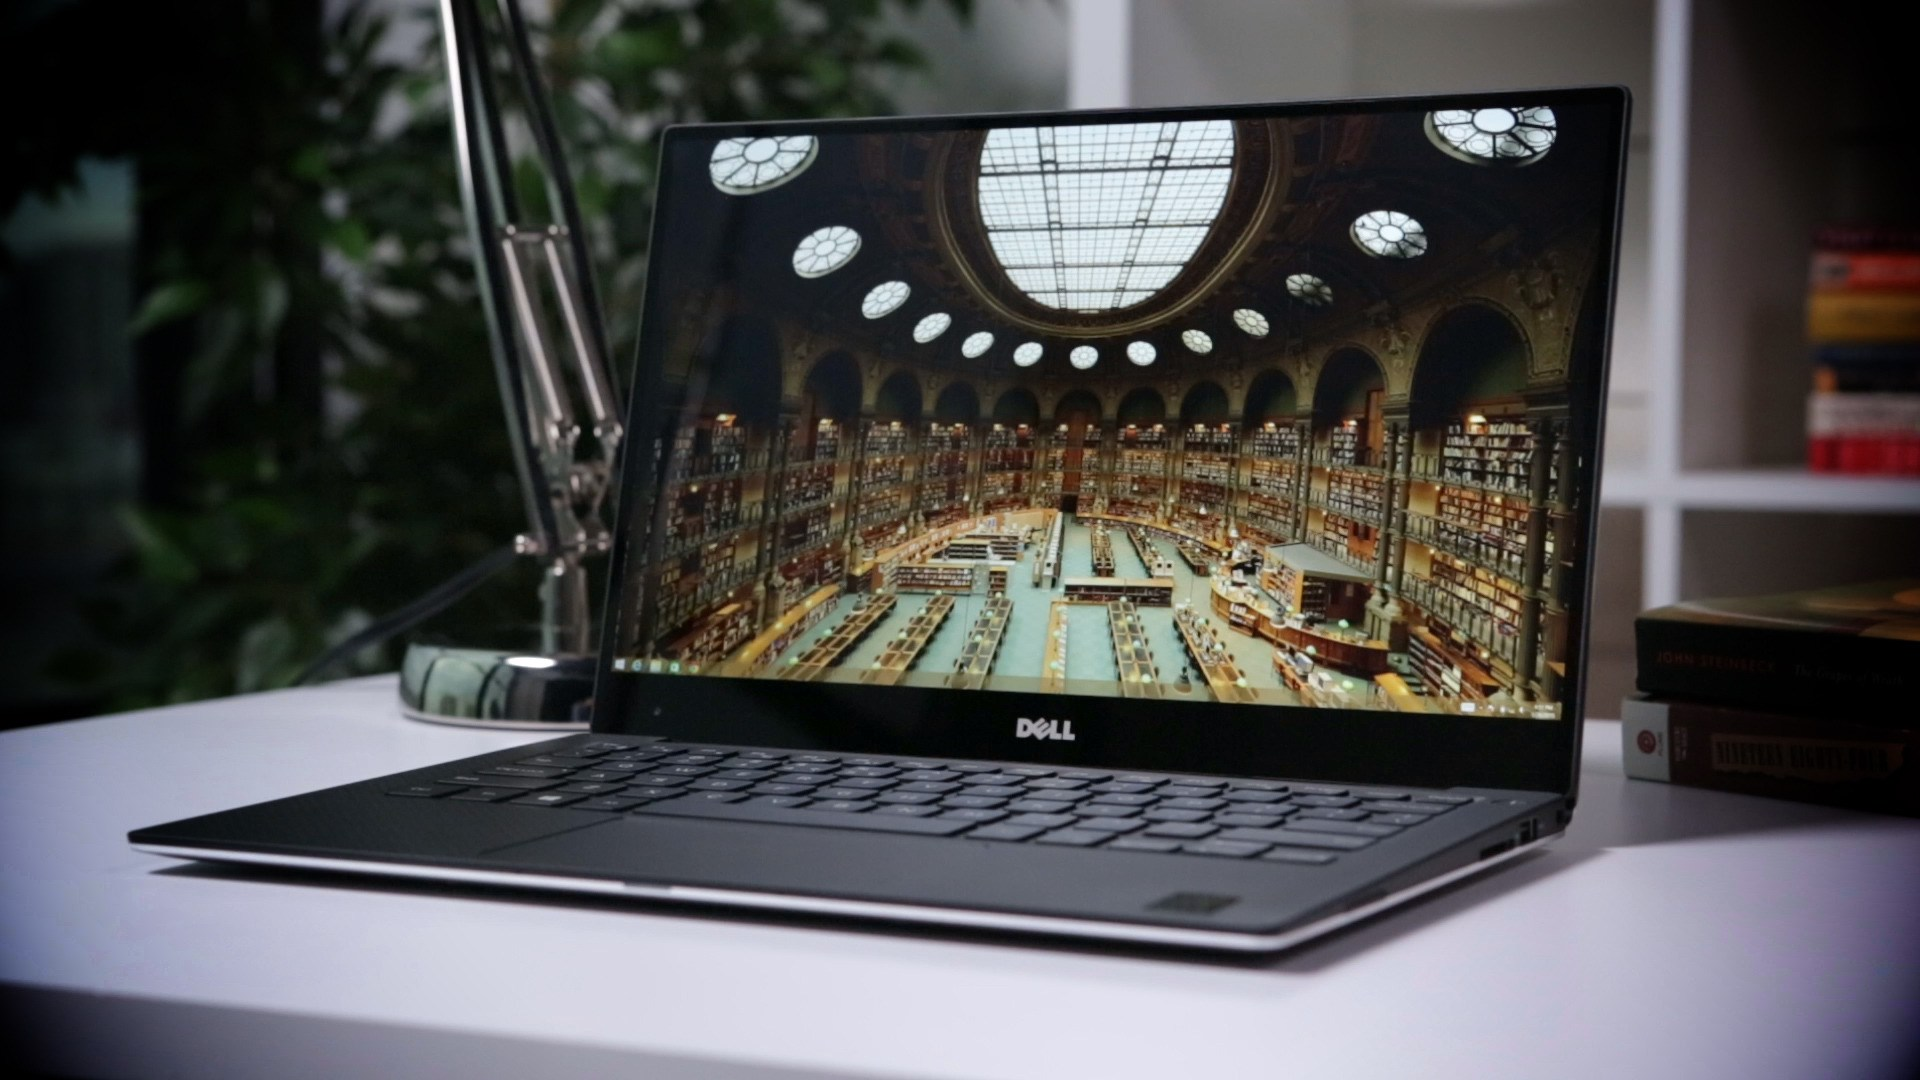 Best Laptop for Hacking And Gaming